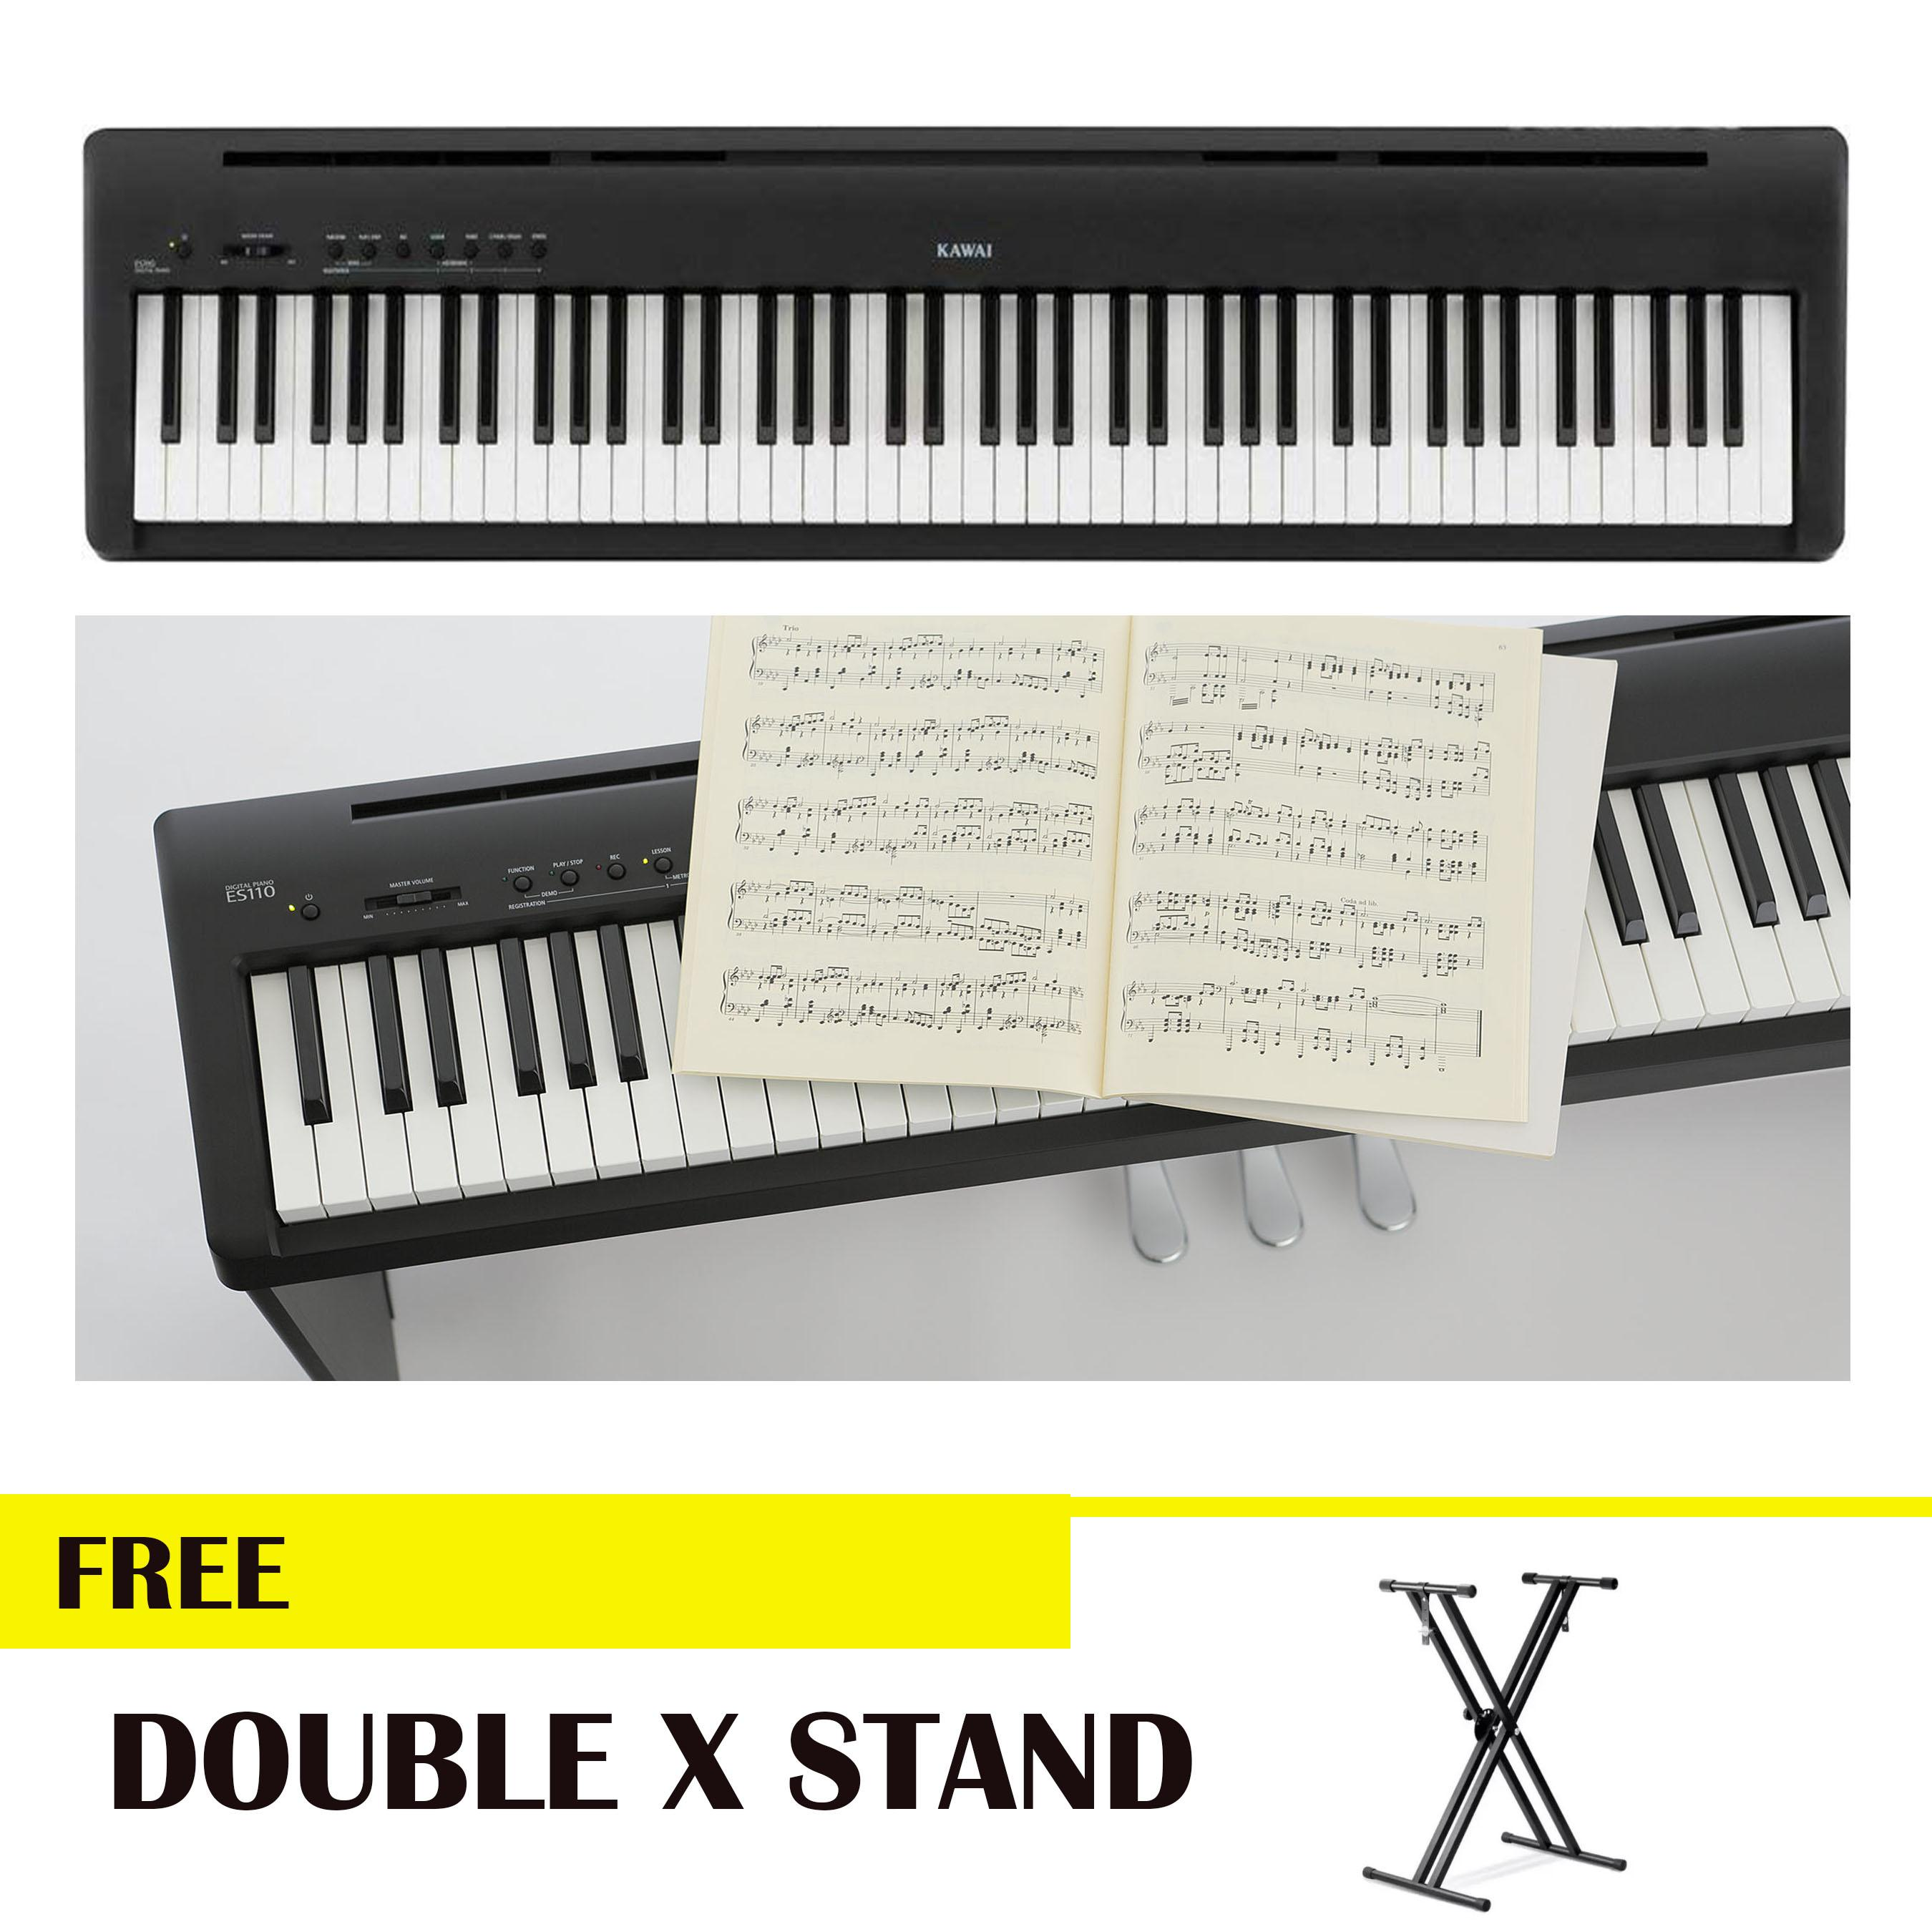 Kawai ES110 88-key Digital Piano with Speaker with Double X Stand